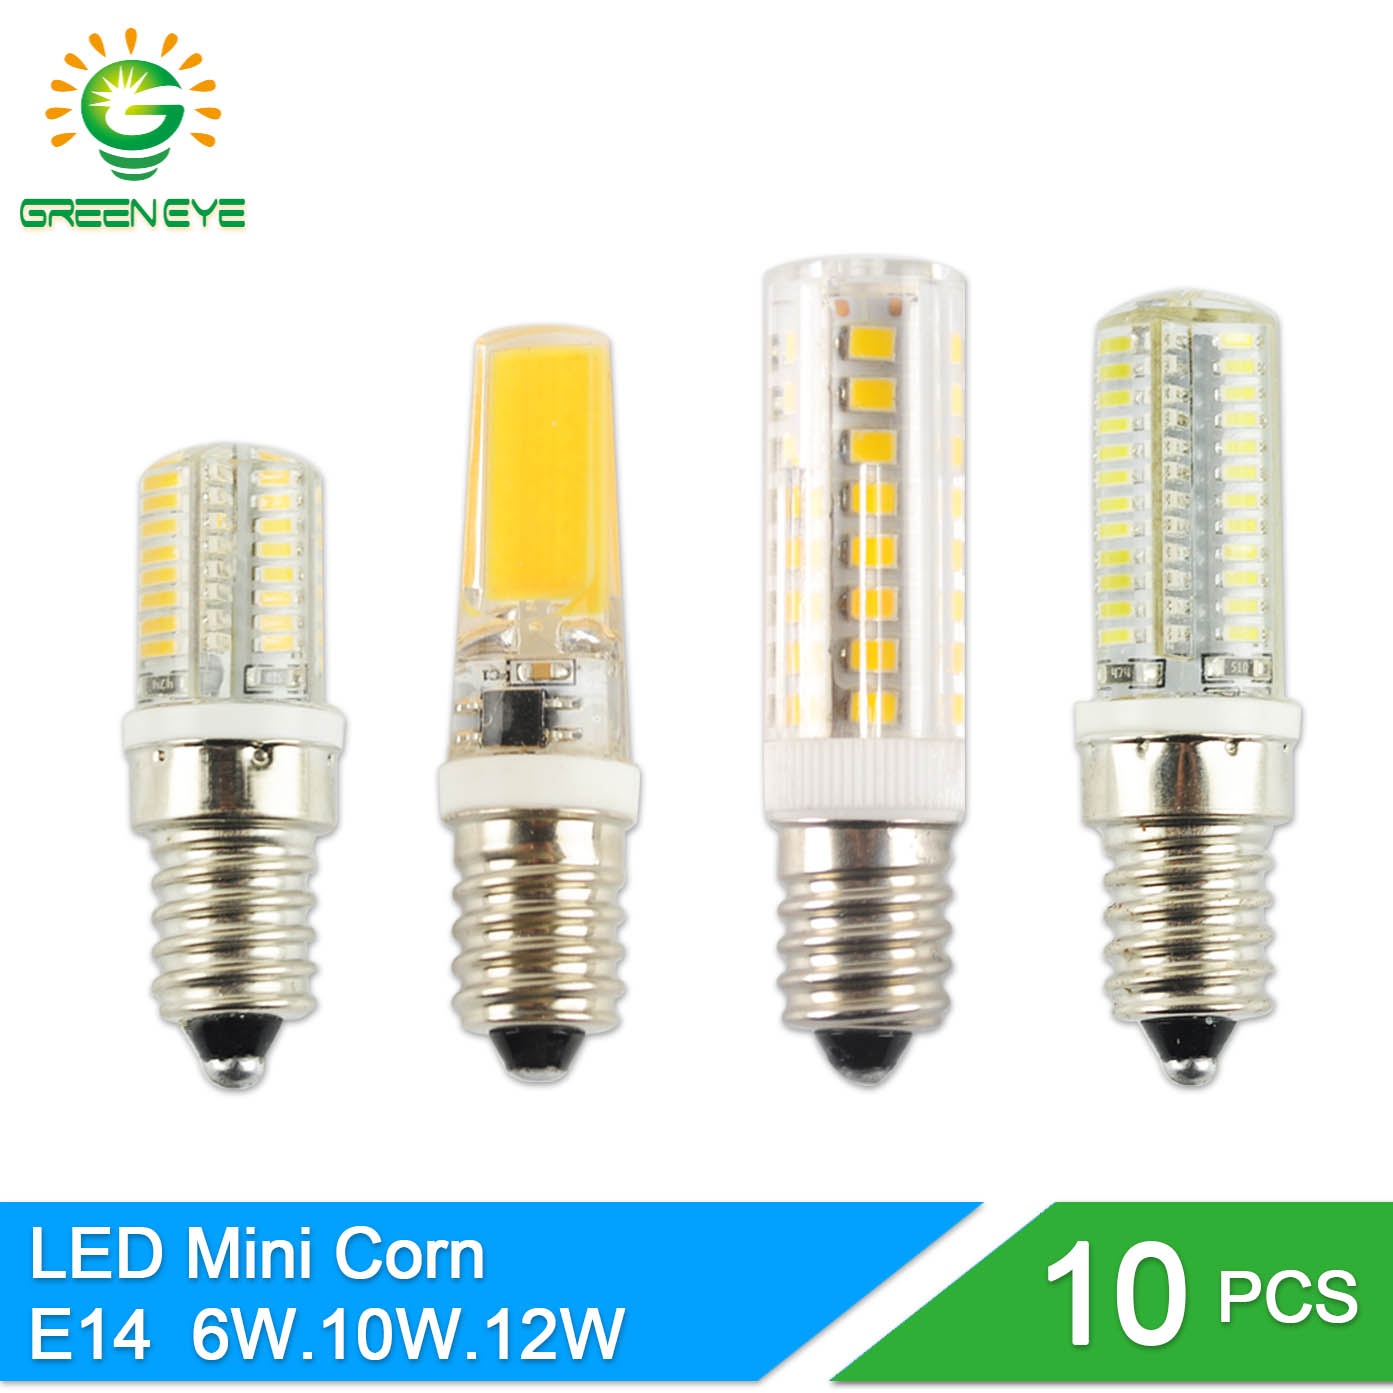 greeneye 10pcs mini led bulb e14 lamp 220v 6w 10w 12w cob light replace halogen spotlight. Black Bedroom Furniture Sets. Home Design Ideas